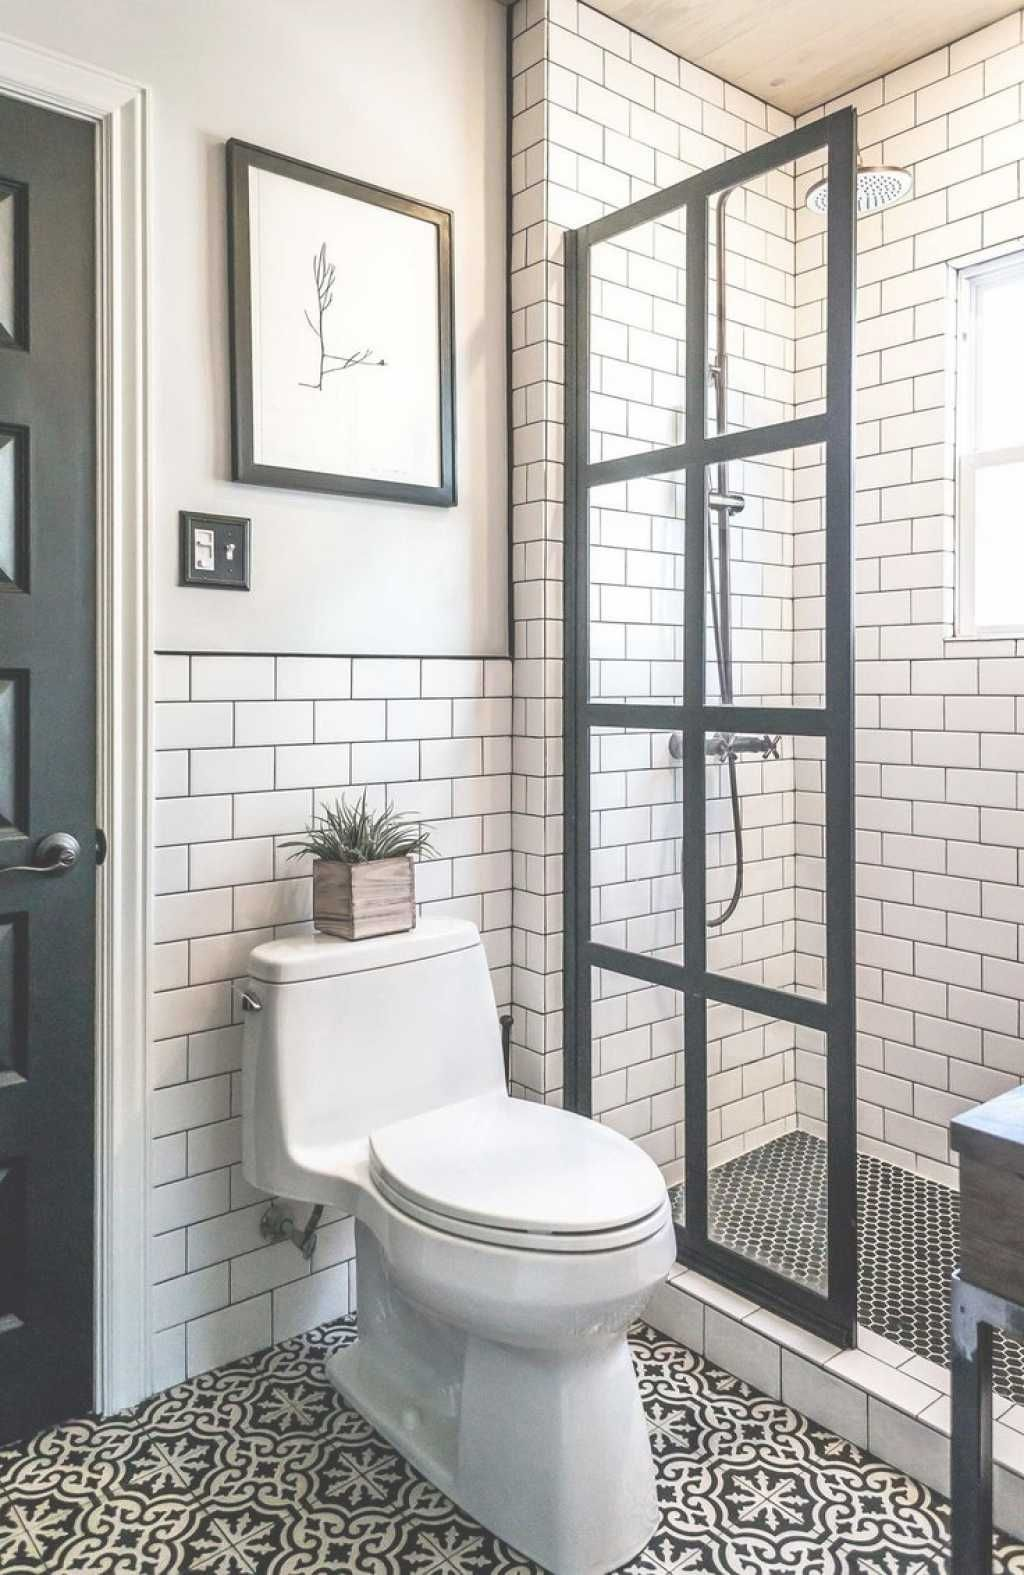 design ideas sanatyelpazesi bathroom x custom cropu maxresdefault fascinating com